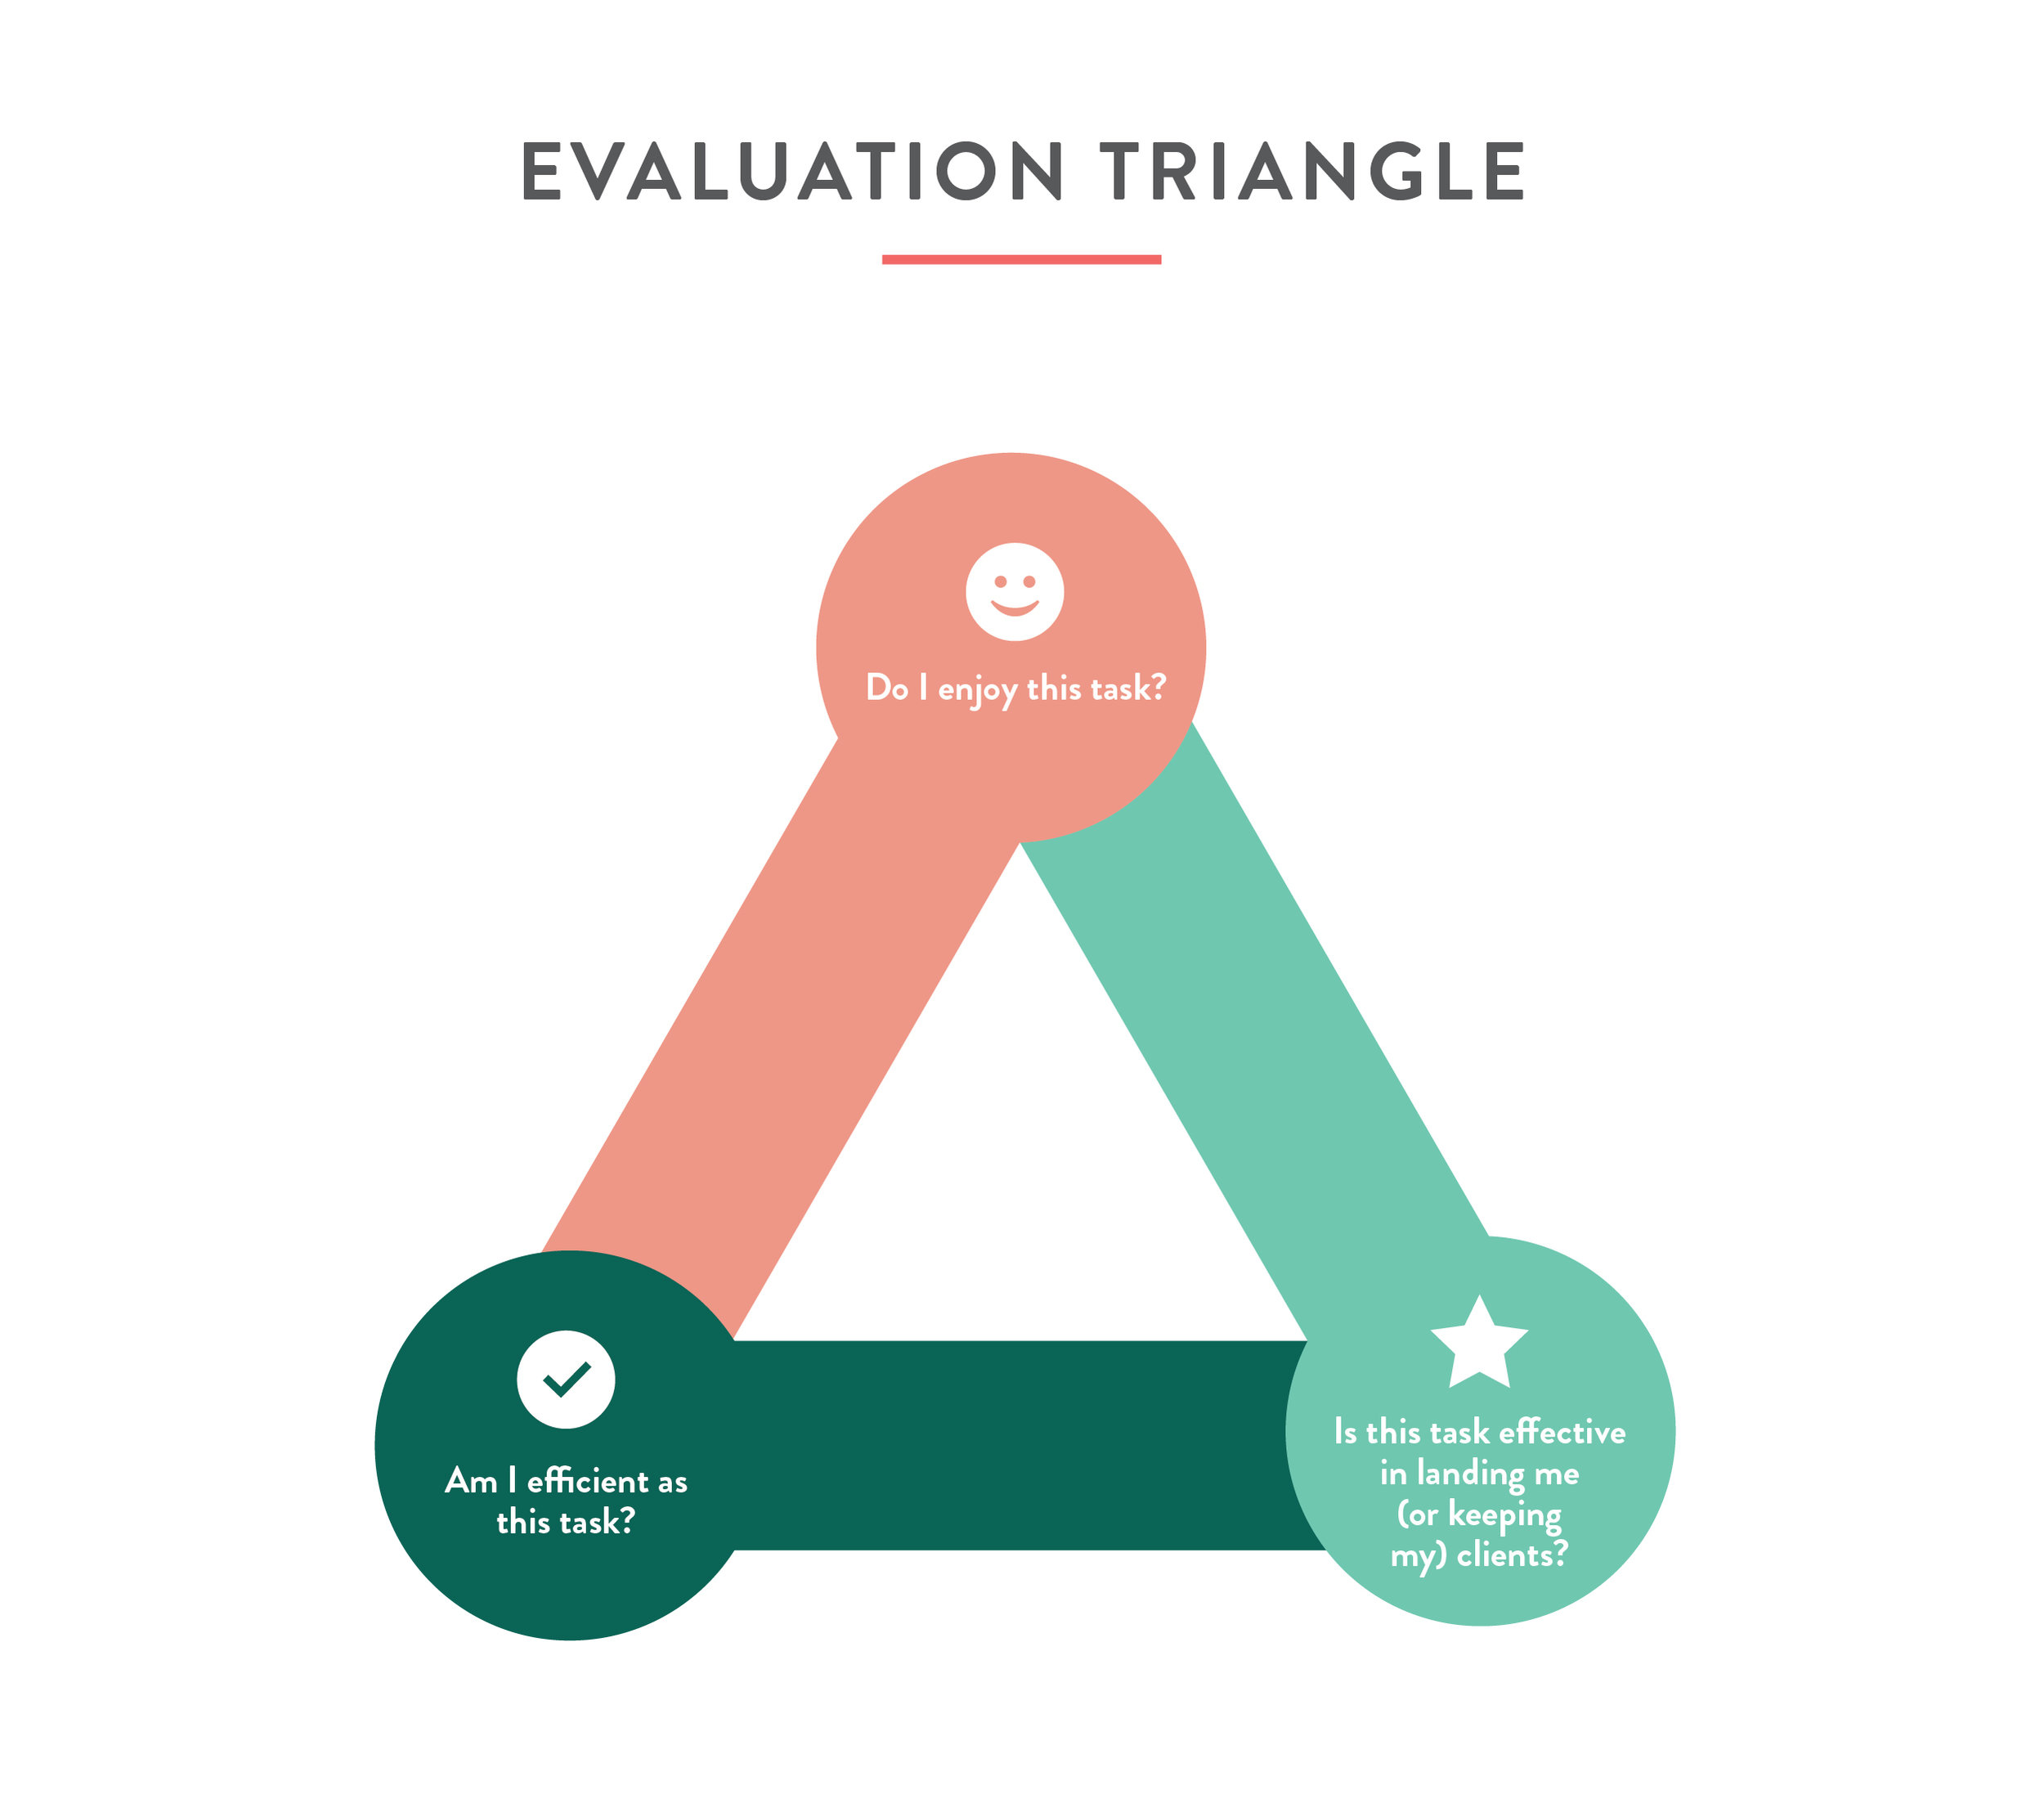 quote_evaluation triangle.jpg